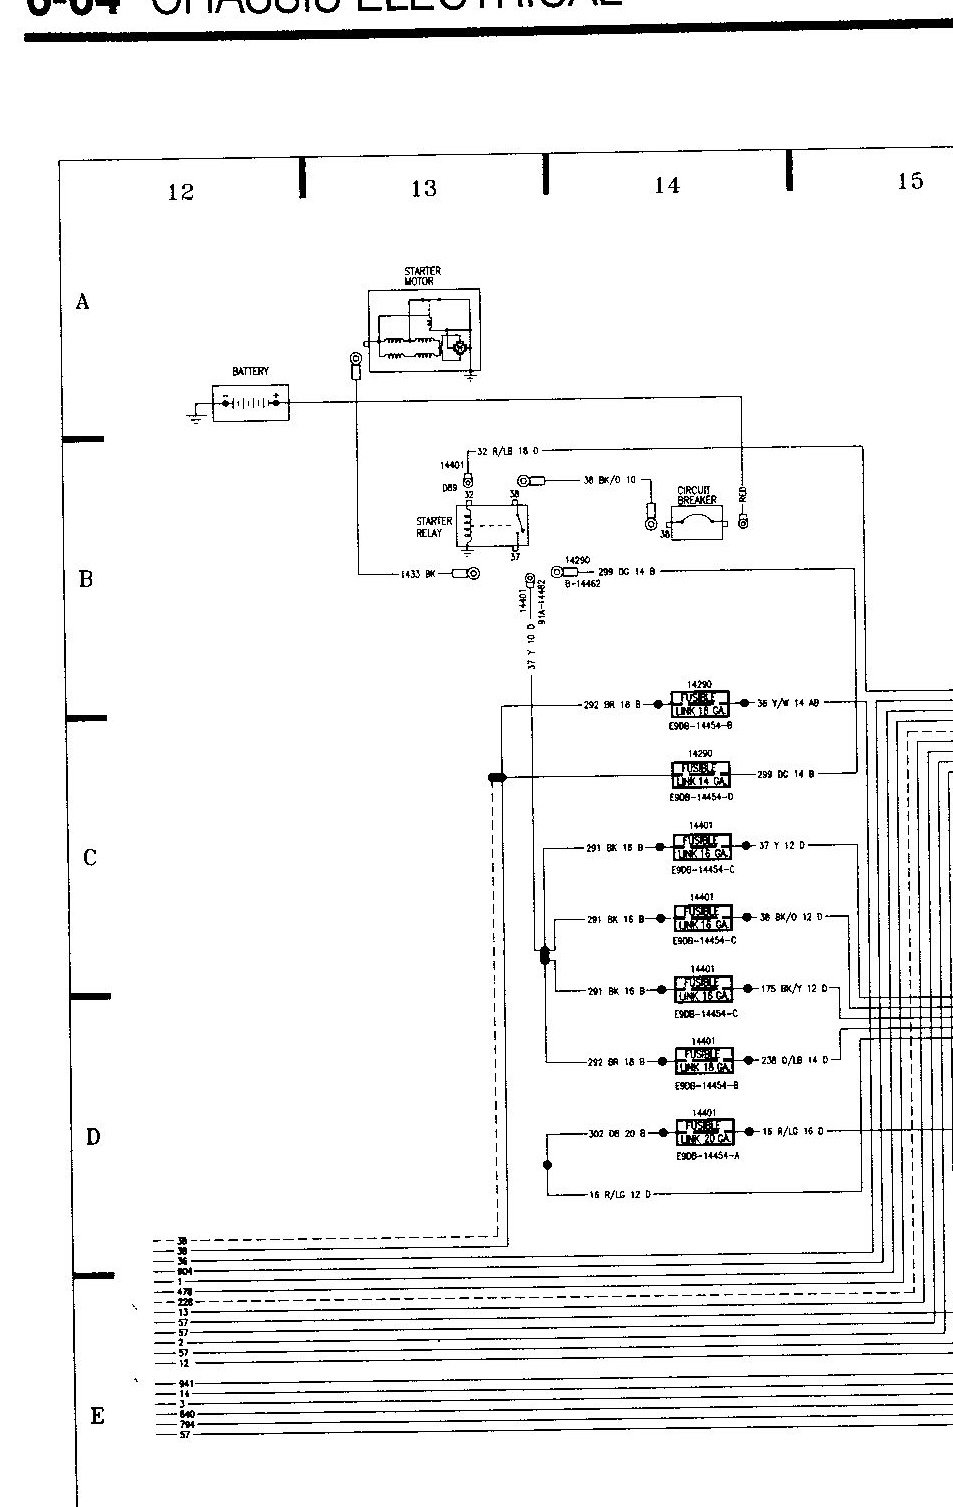 1990 Mustang Lx 5 0 Starter Solenoid Wiring Problems